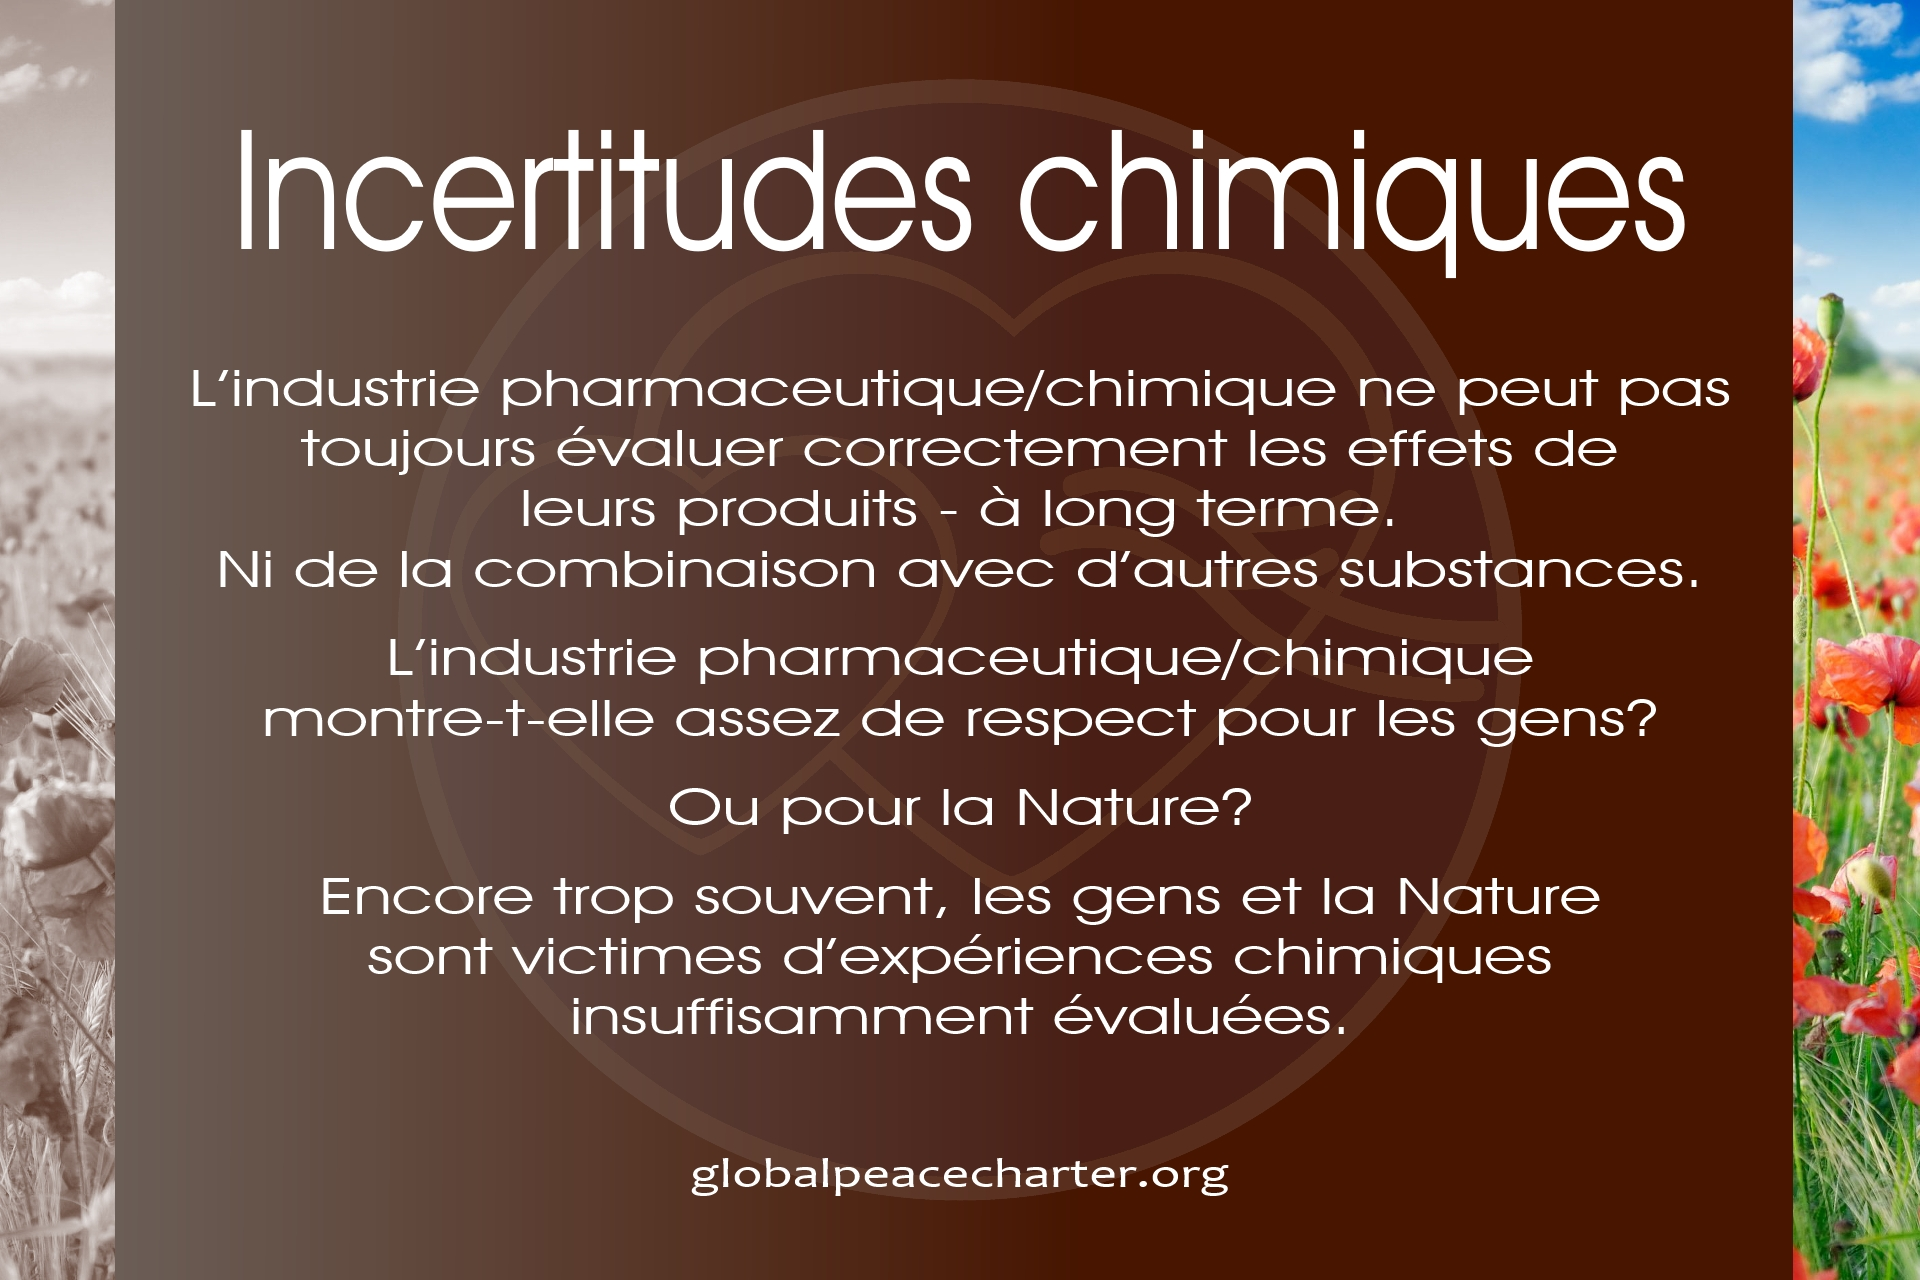 Incertitudes chimiques